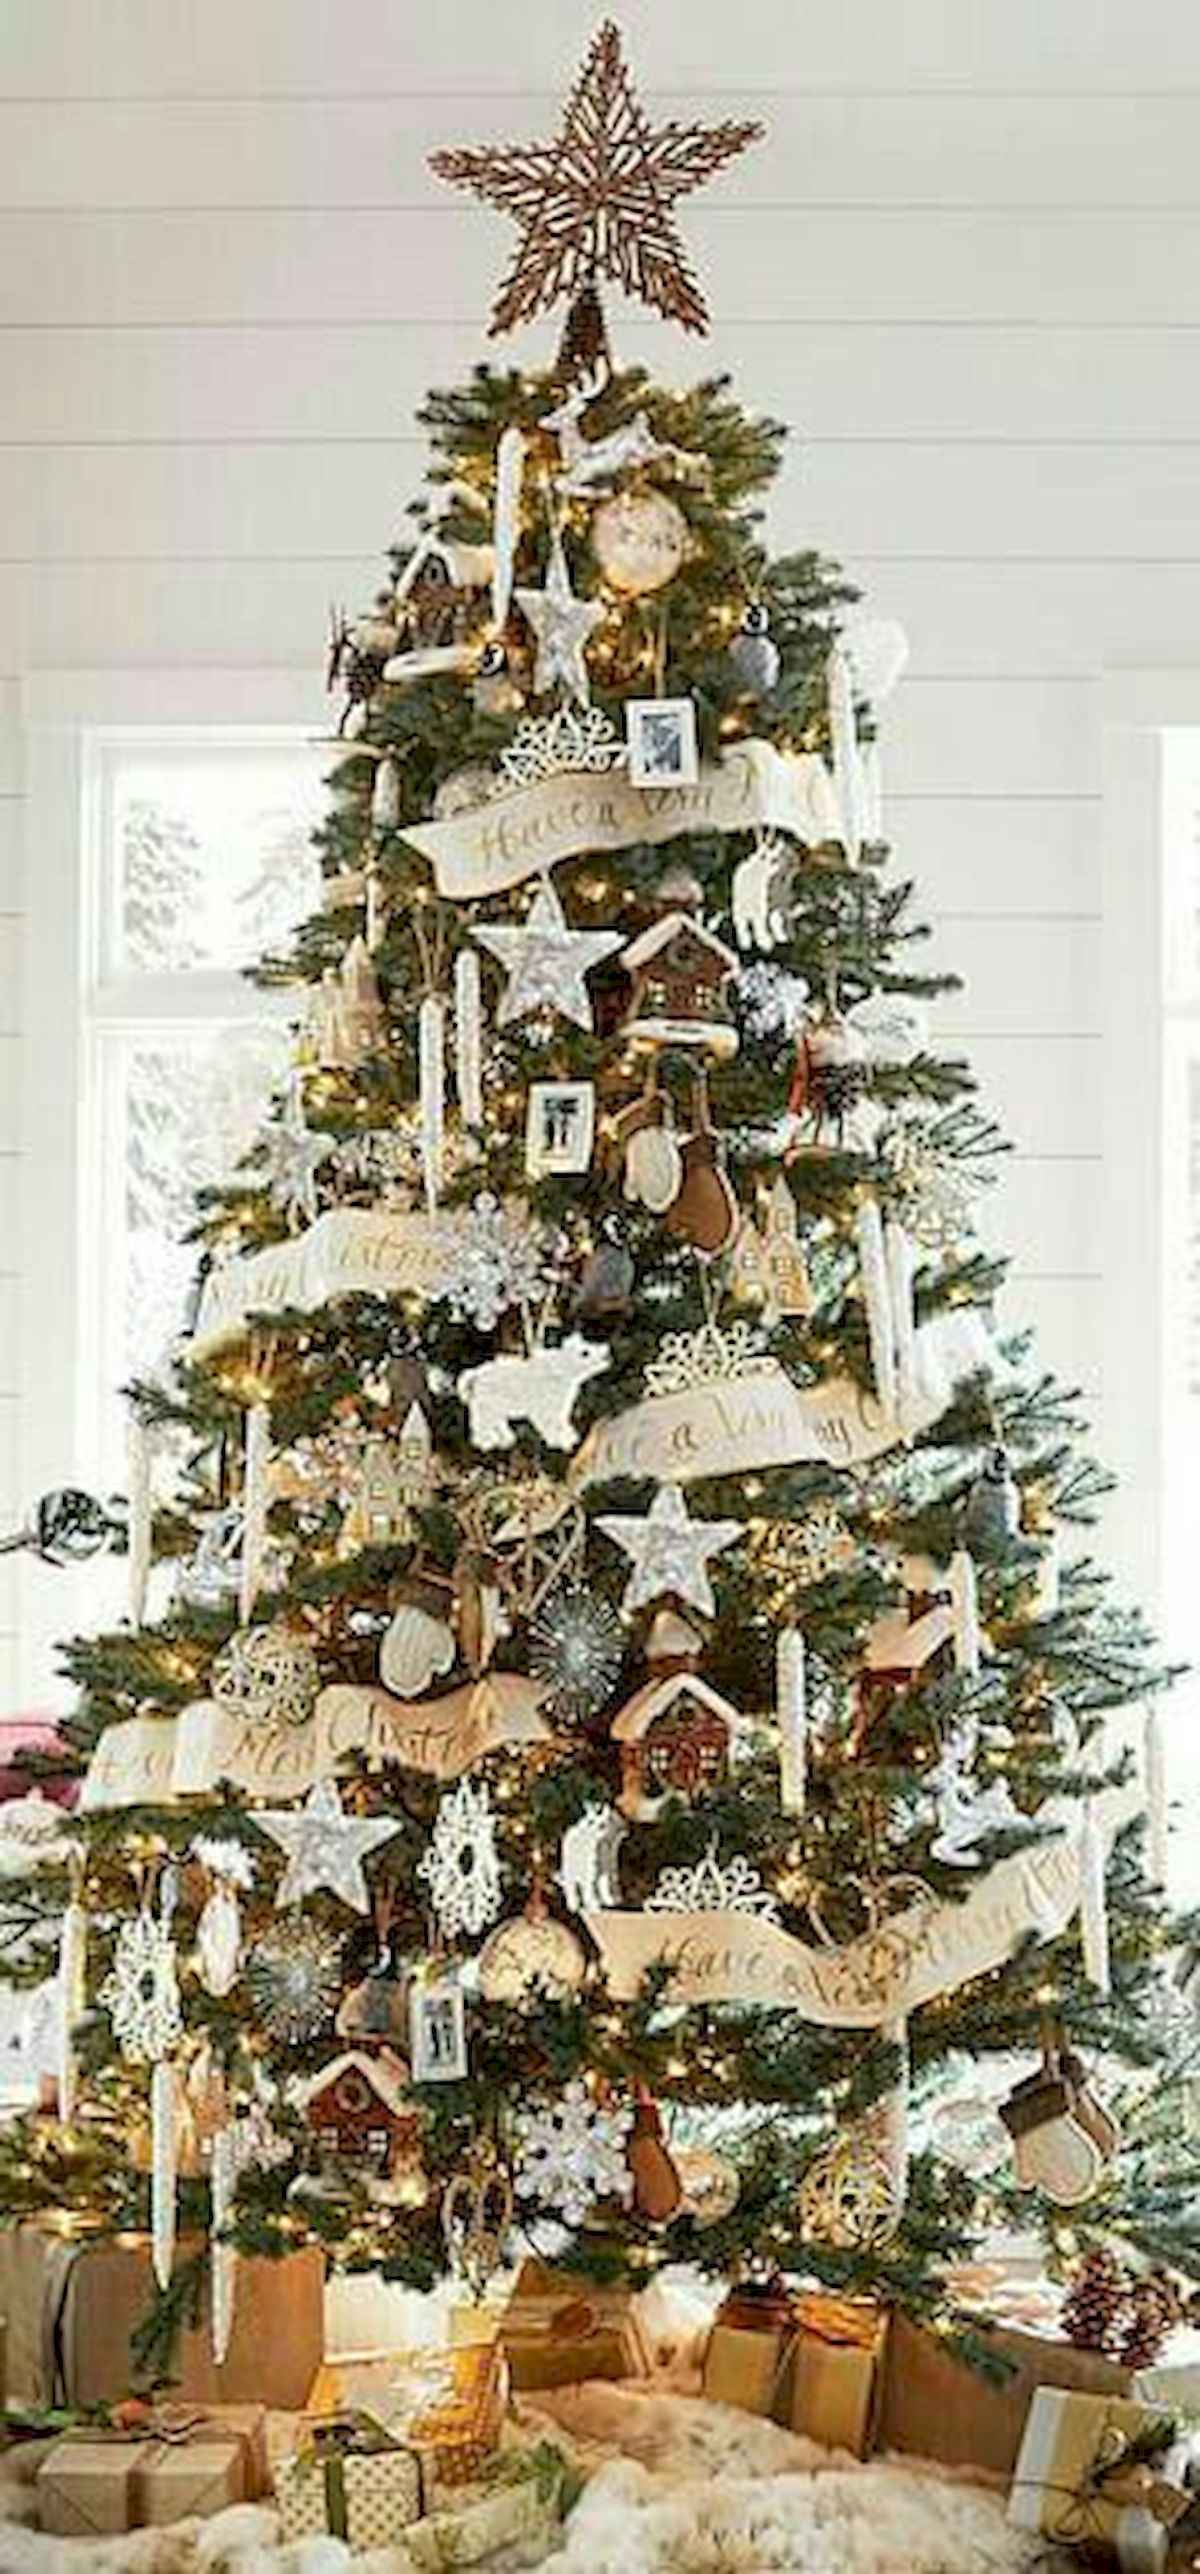 60 awesome christmas tree decorations ideas (53)